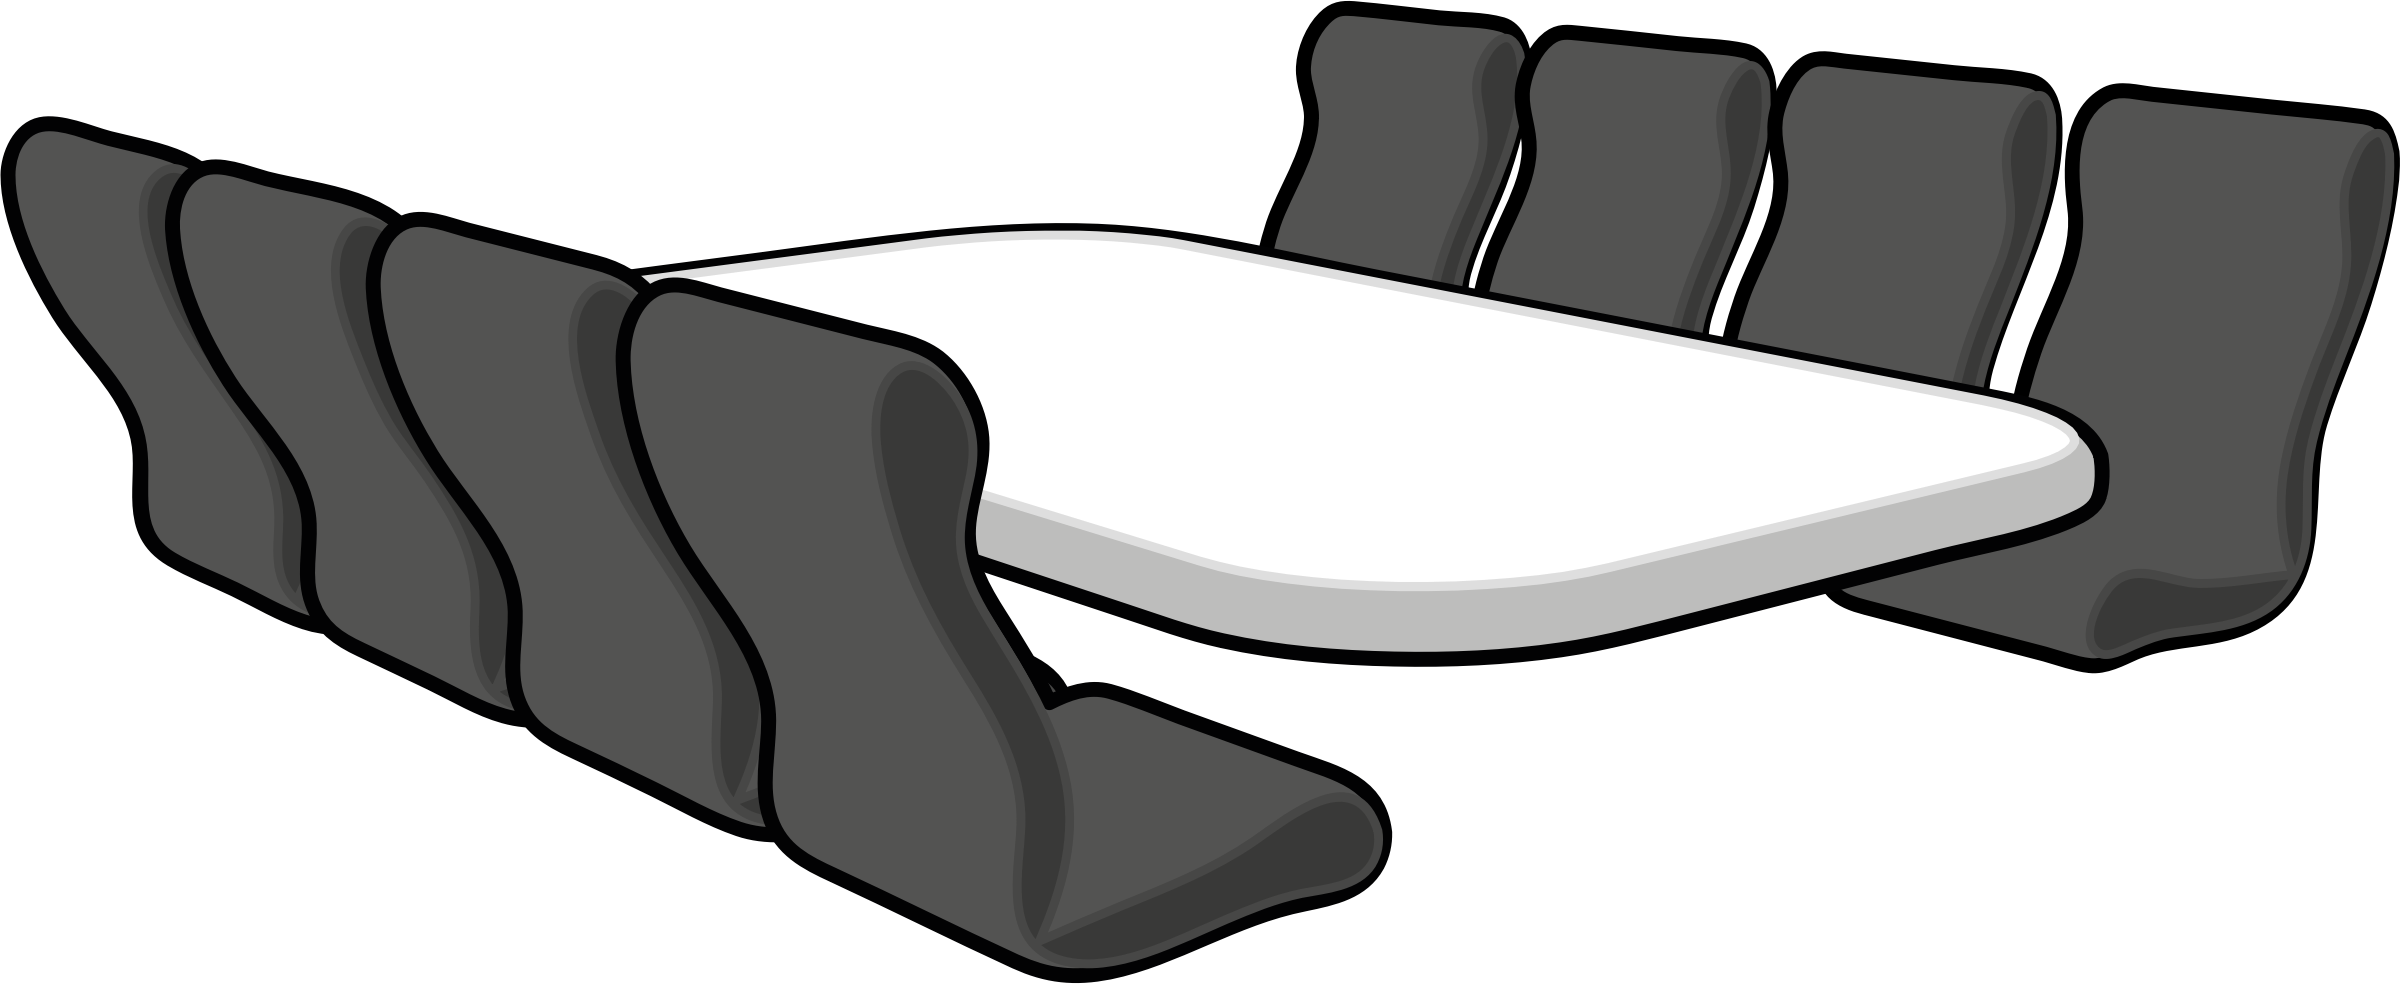 Meeting Room with Seats vector clipart image.